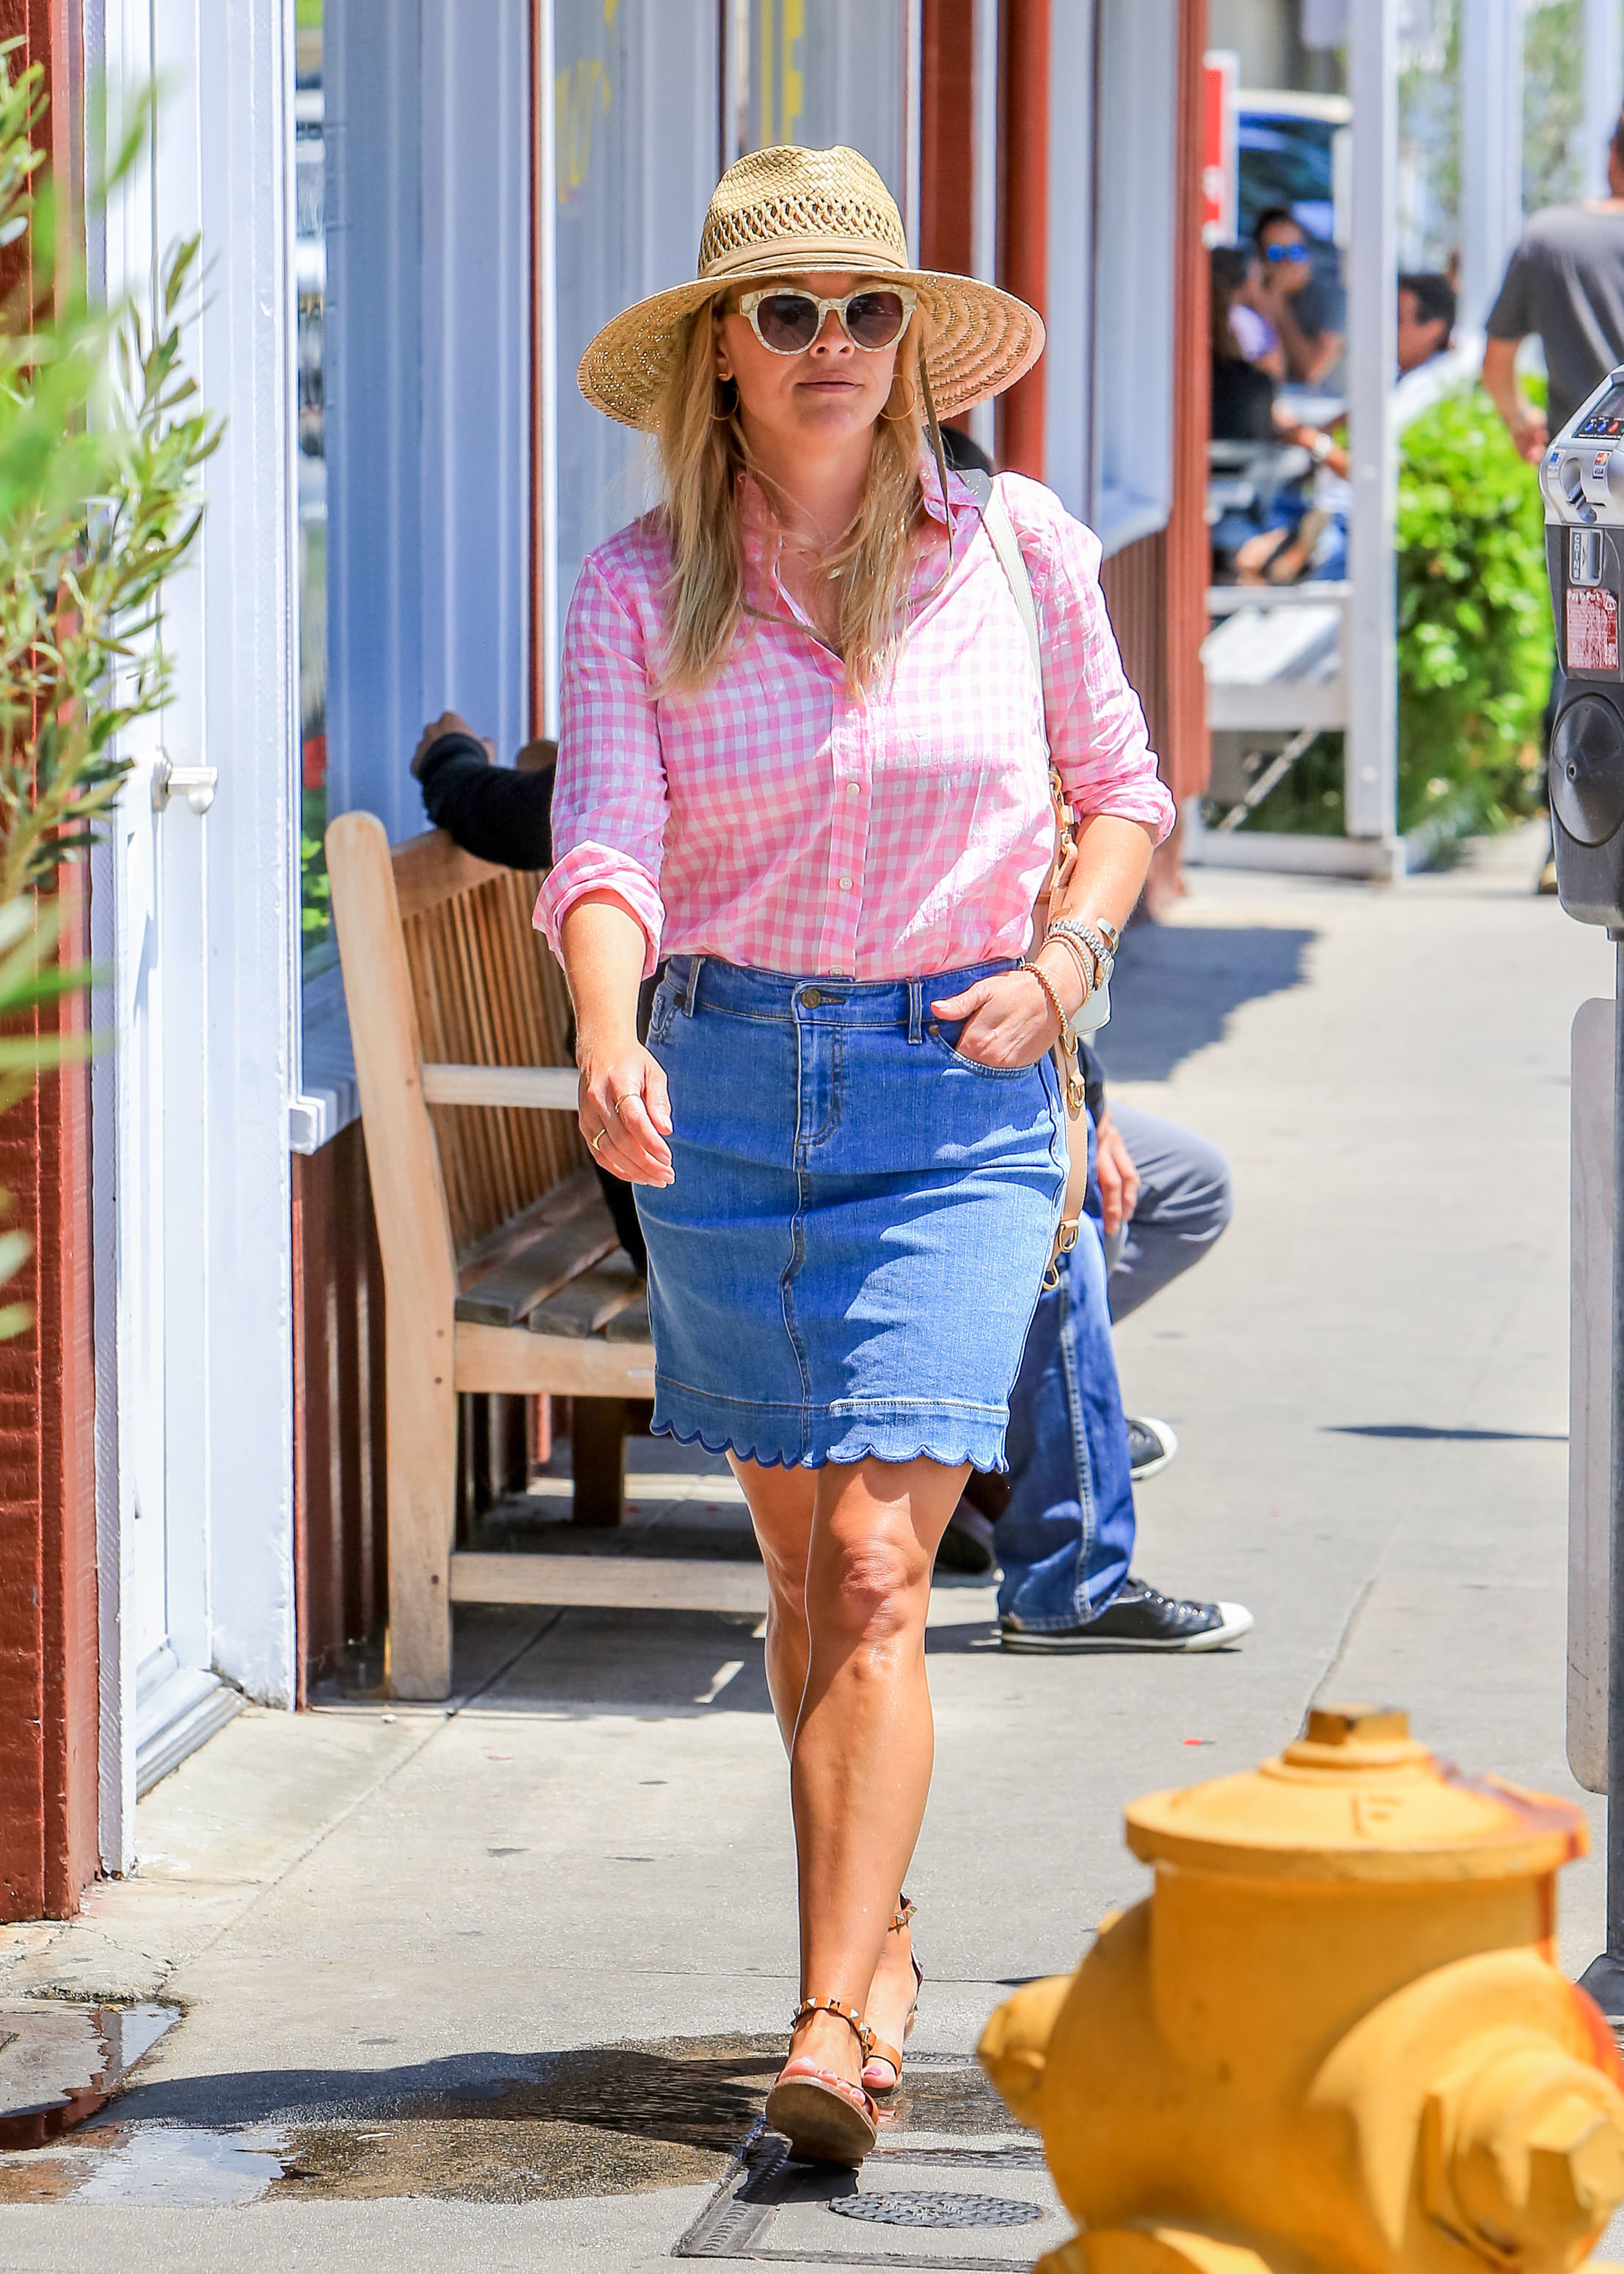 Reese Witherspoon is spotted out and about in Los Angeles on July 19, 2018.